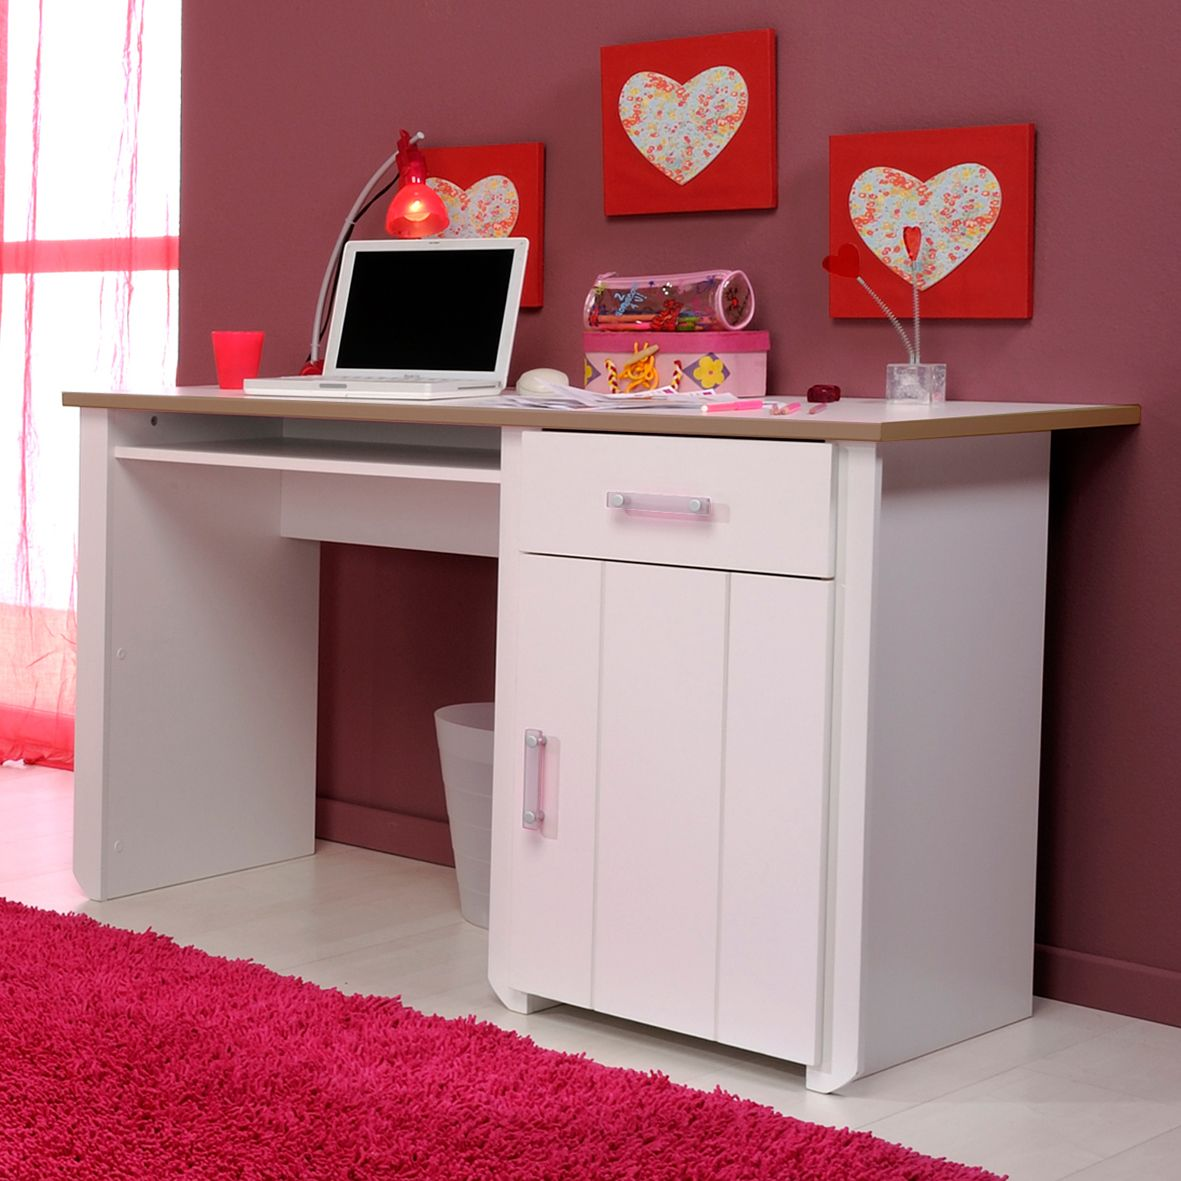 Desks For Kids Part - 40: Impressive Desks For Kids With Cute Decoration: Beautiful Brown Wall Heart  Shape Decor Tobie Study Desks For Kids Design Finished With White.